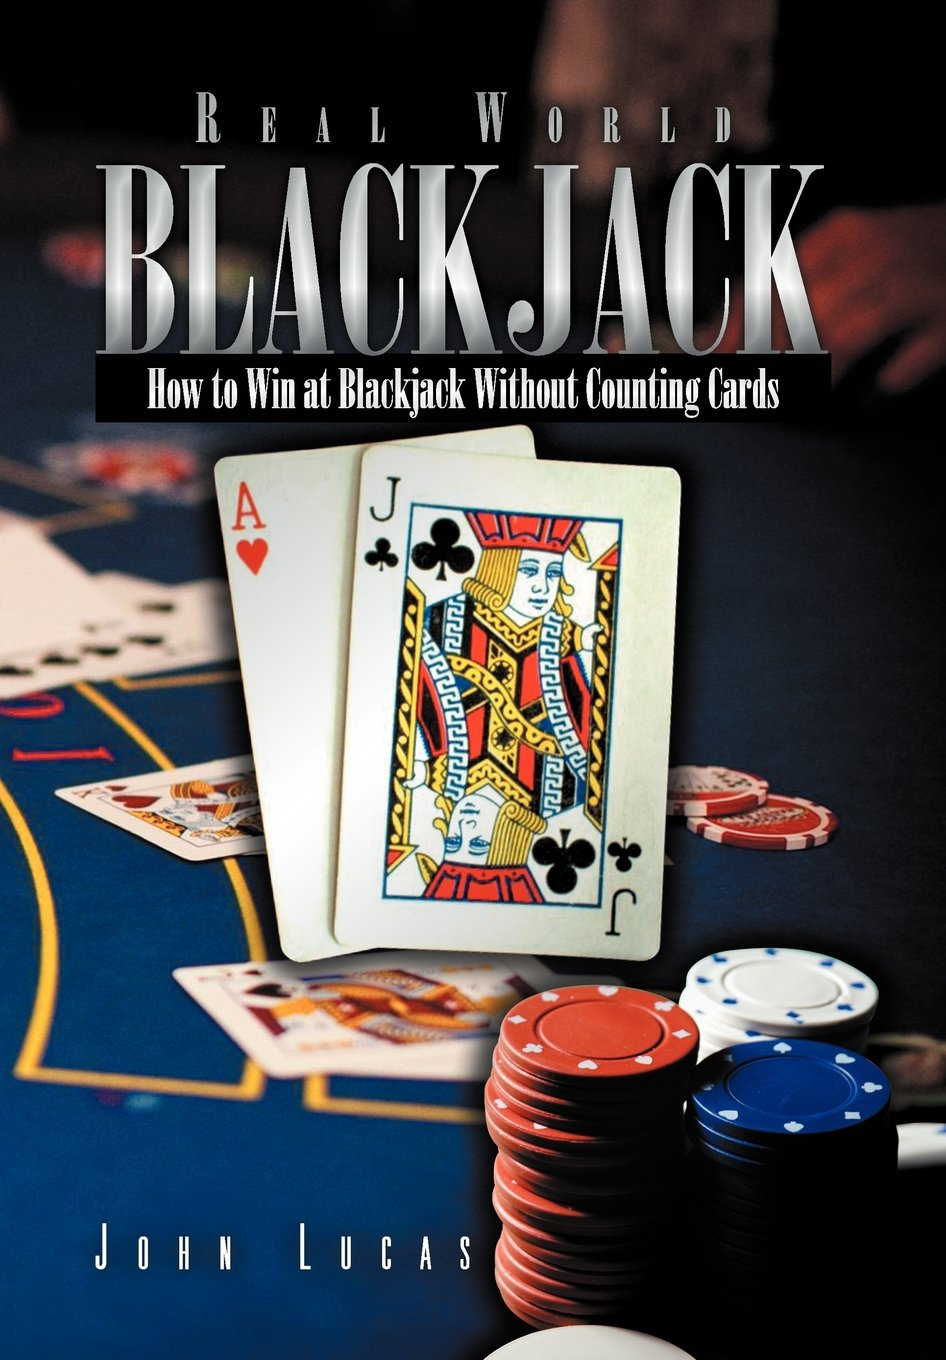 Real Word Blackjack: How to Win at Blackjack Without Counting Cards ebook